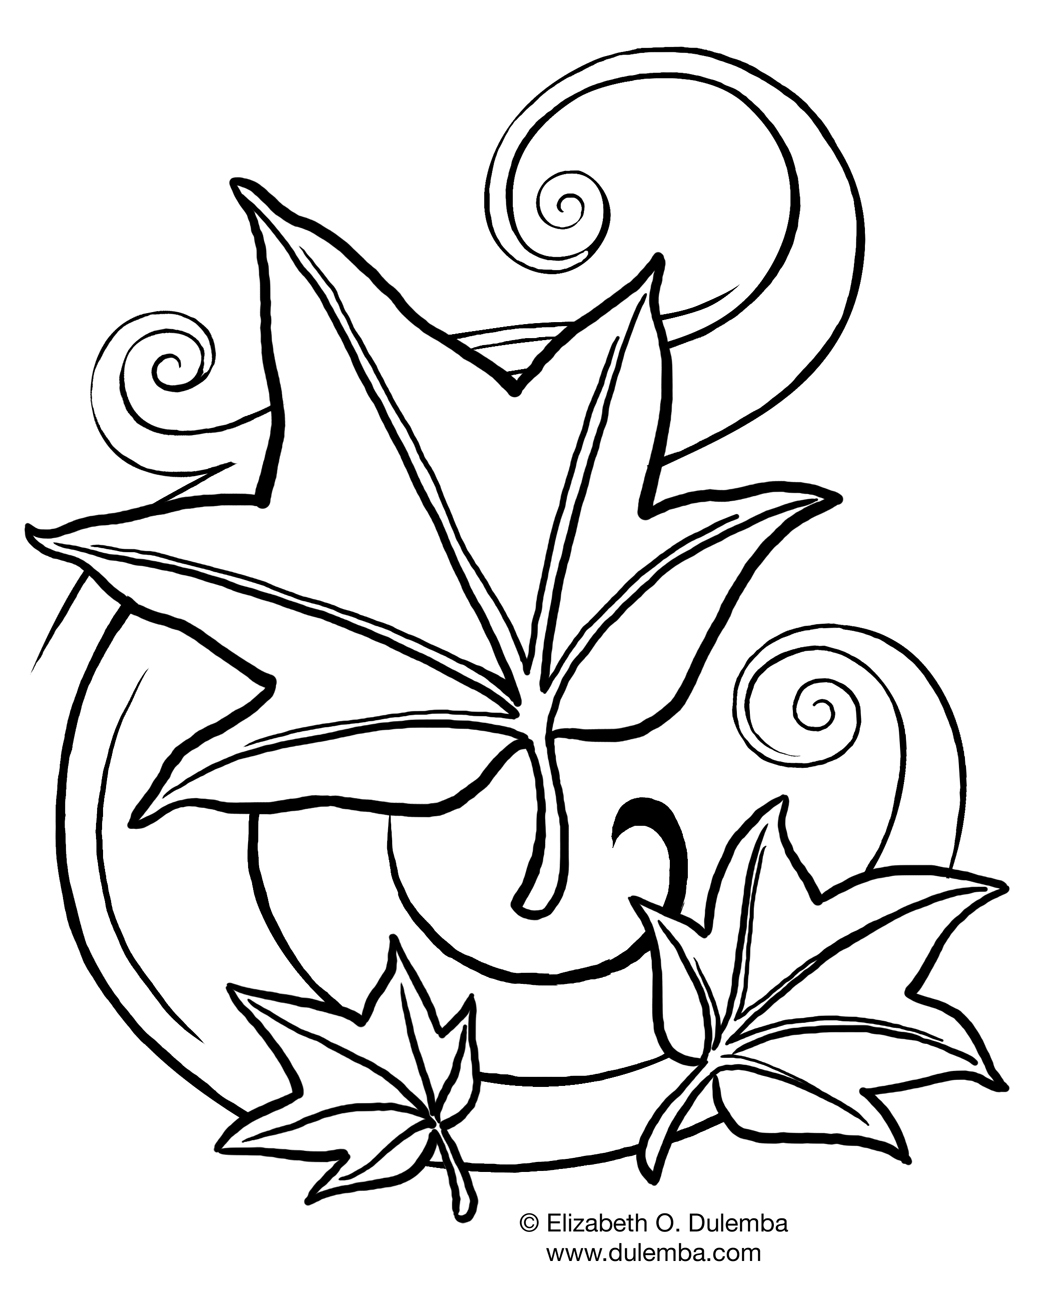 free fall coloring pages free fall coloring pages for kids gtgt disney coloring pages pages fall free coloring